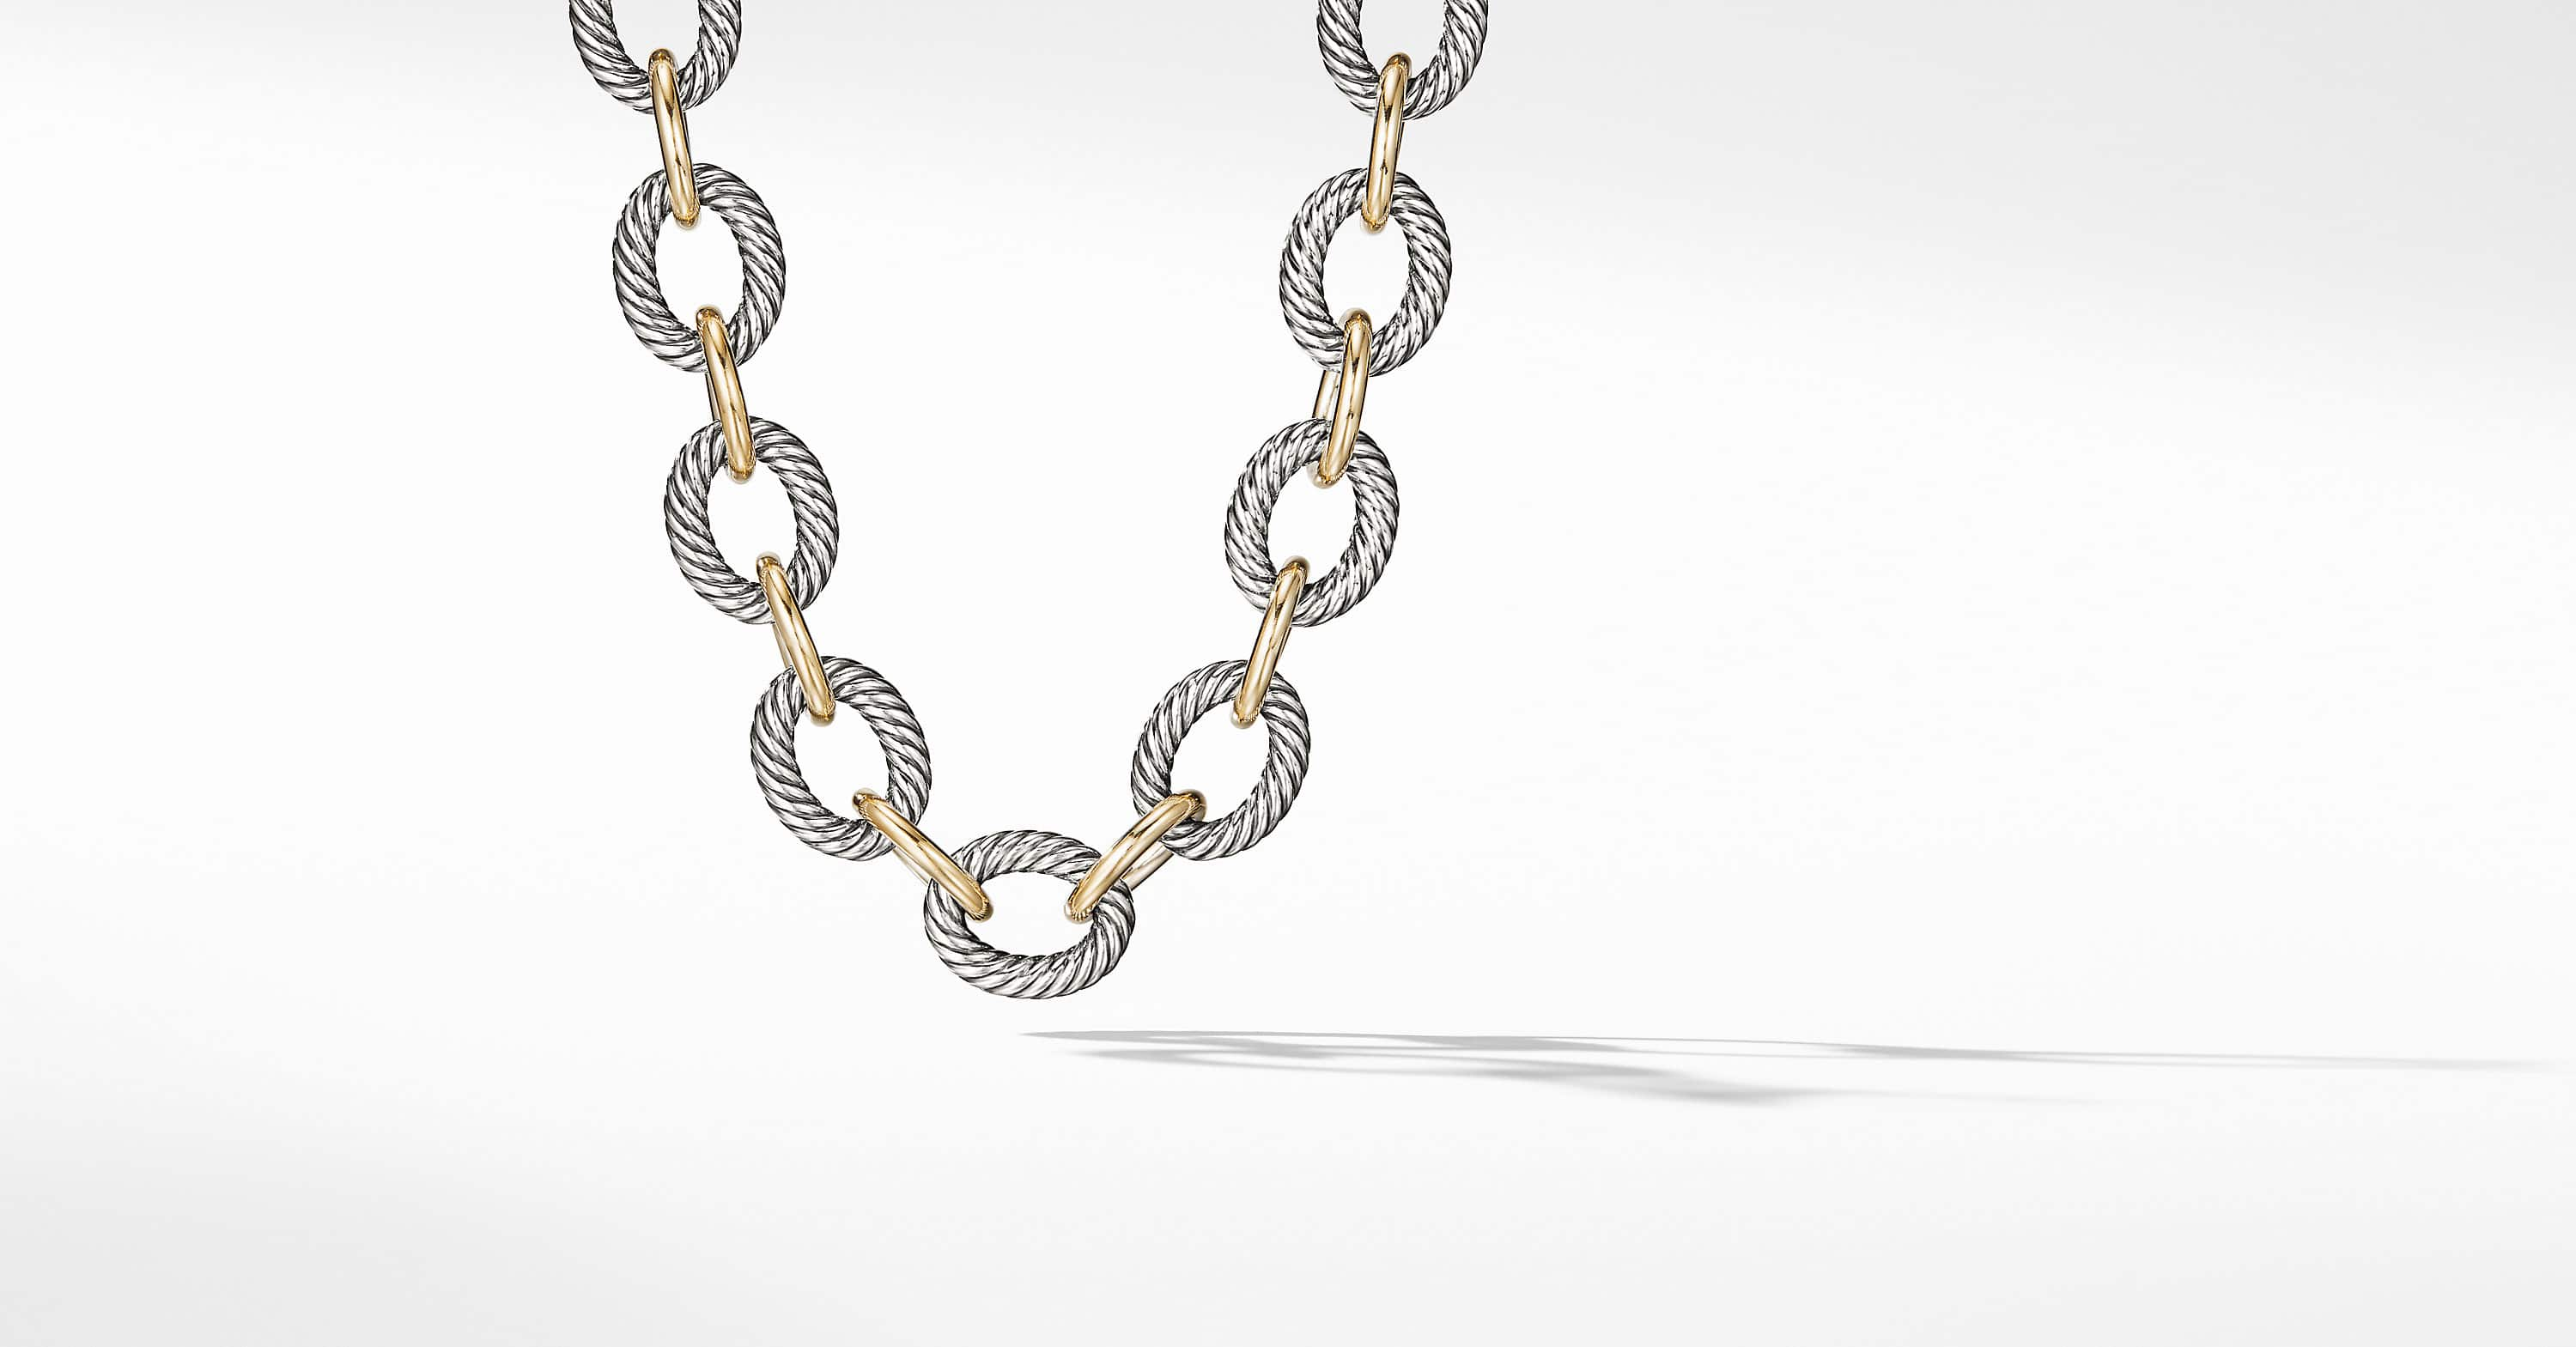 Extra-Large Oval Link Necklace with 18K Gold